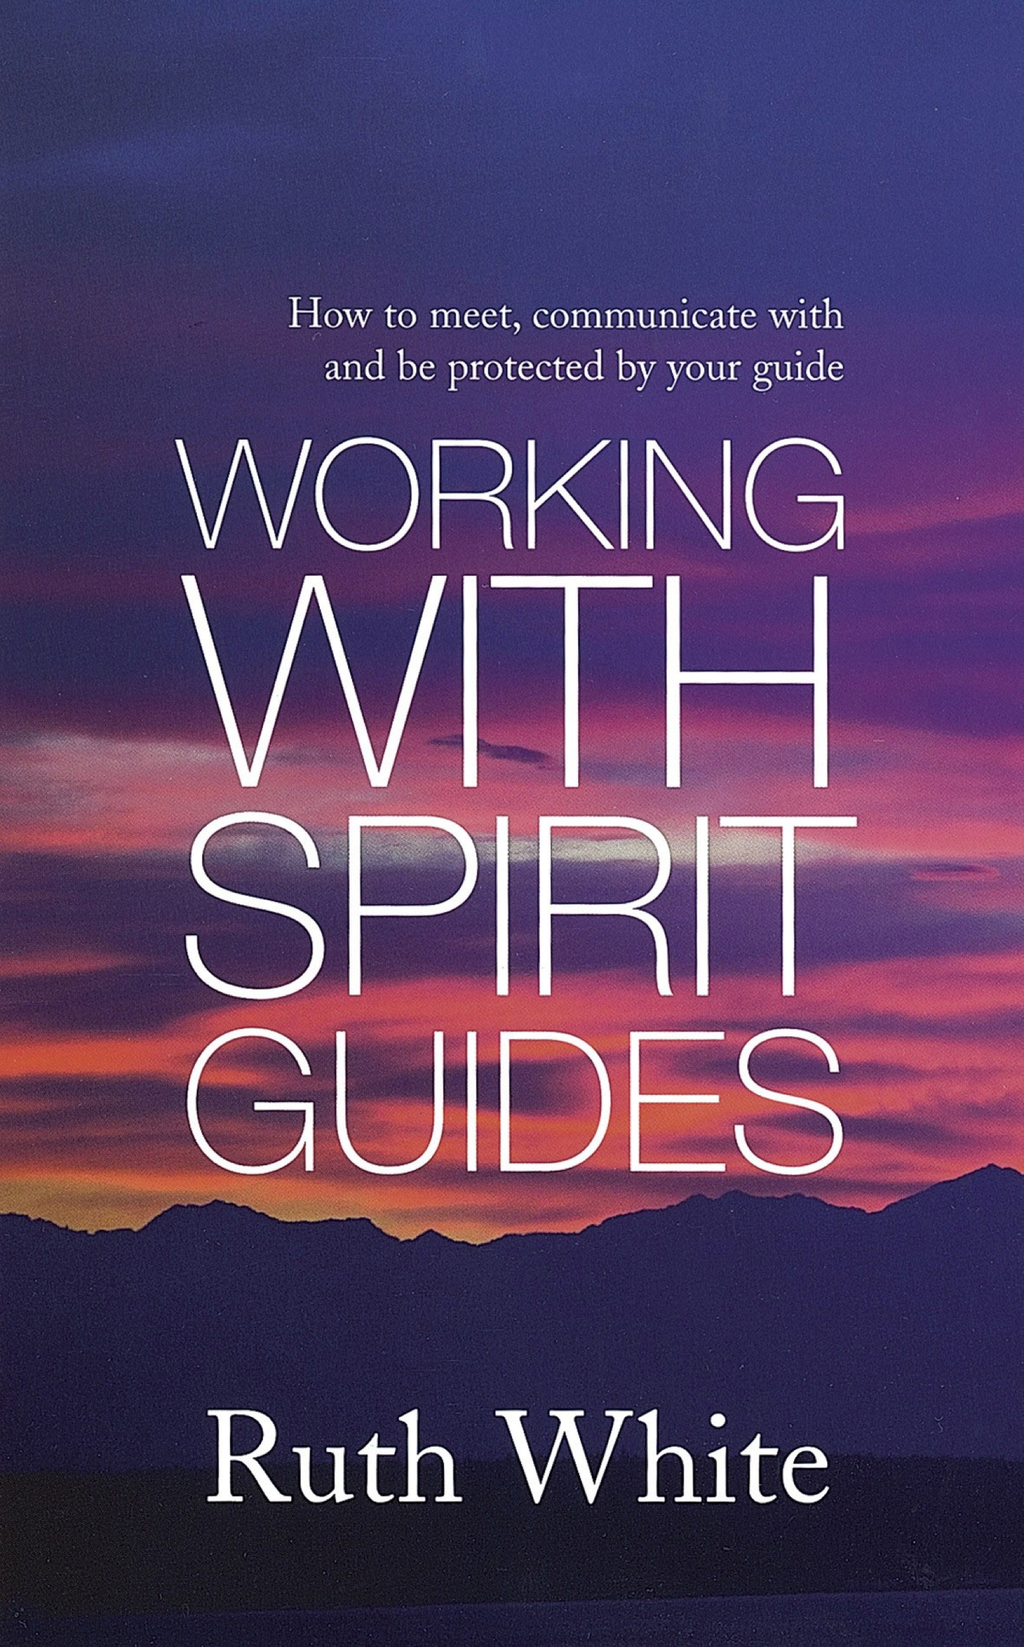 Working With Spirit Guides Simple ways to meet,  communicate with and be protected by your guides